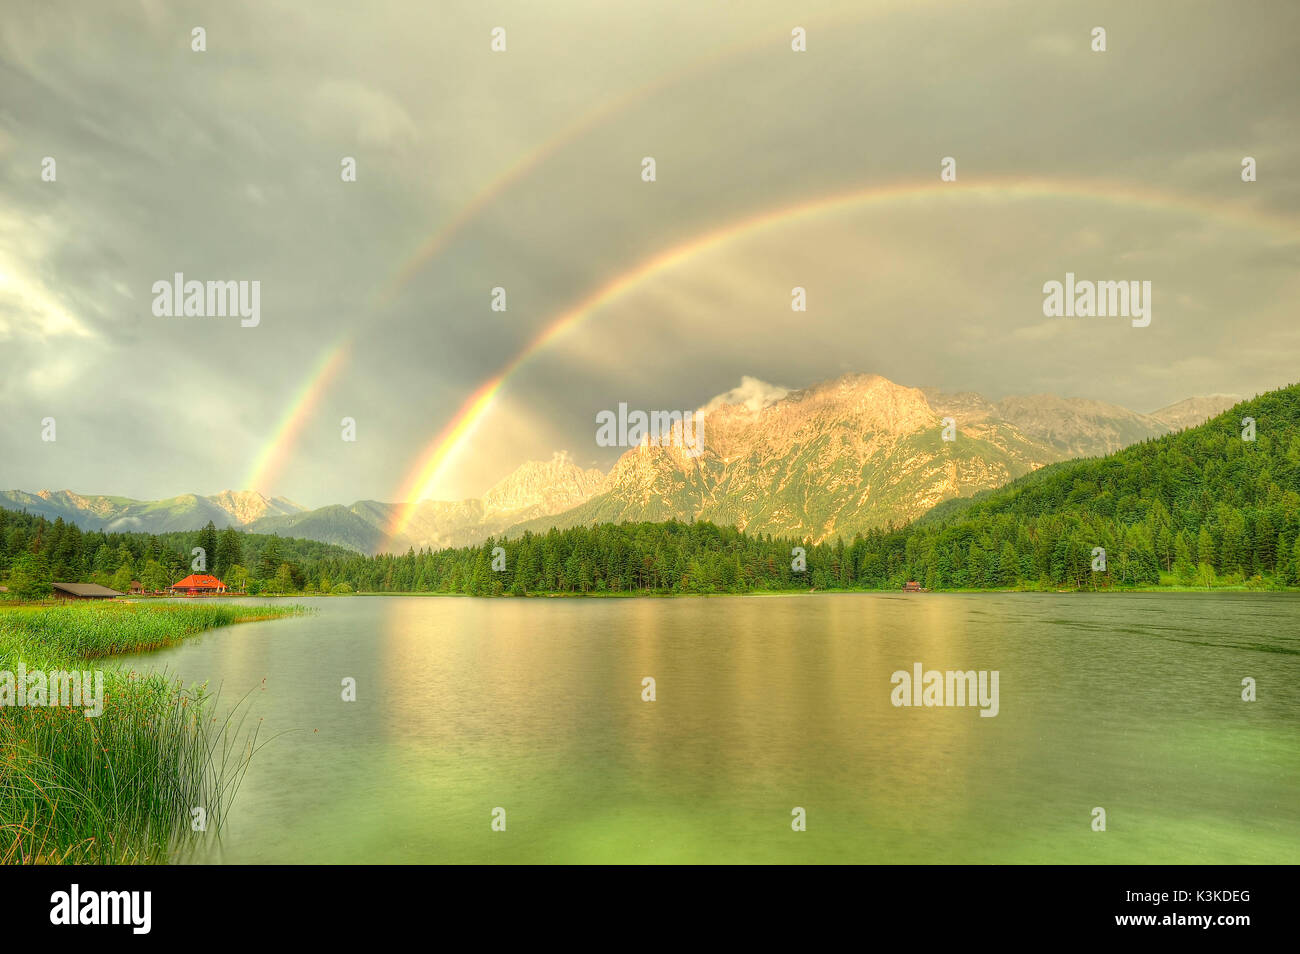 Double rainbow about the northern Karwendelgebirge (mountains) over Mittenwald. The water surface of the Lautersee (lake) is easily curled by beginning rain. On the left in the picture there is the red roof of a small outdoor swimming pool with kiosk, on the right the water guard small house. - Stock Image